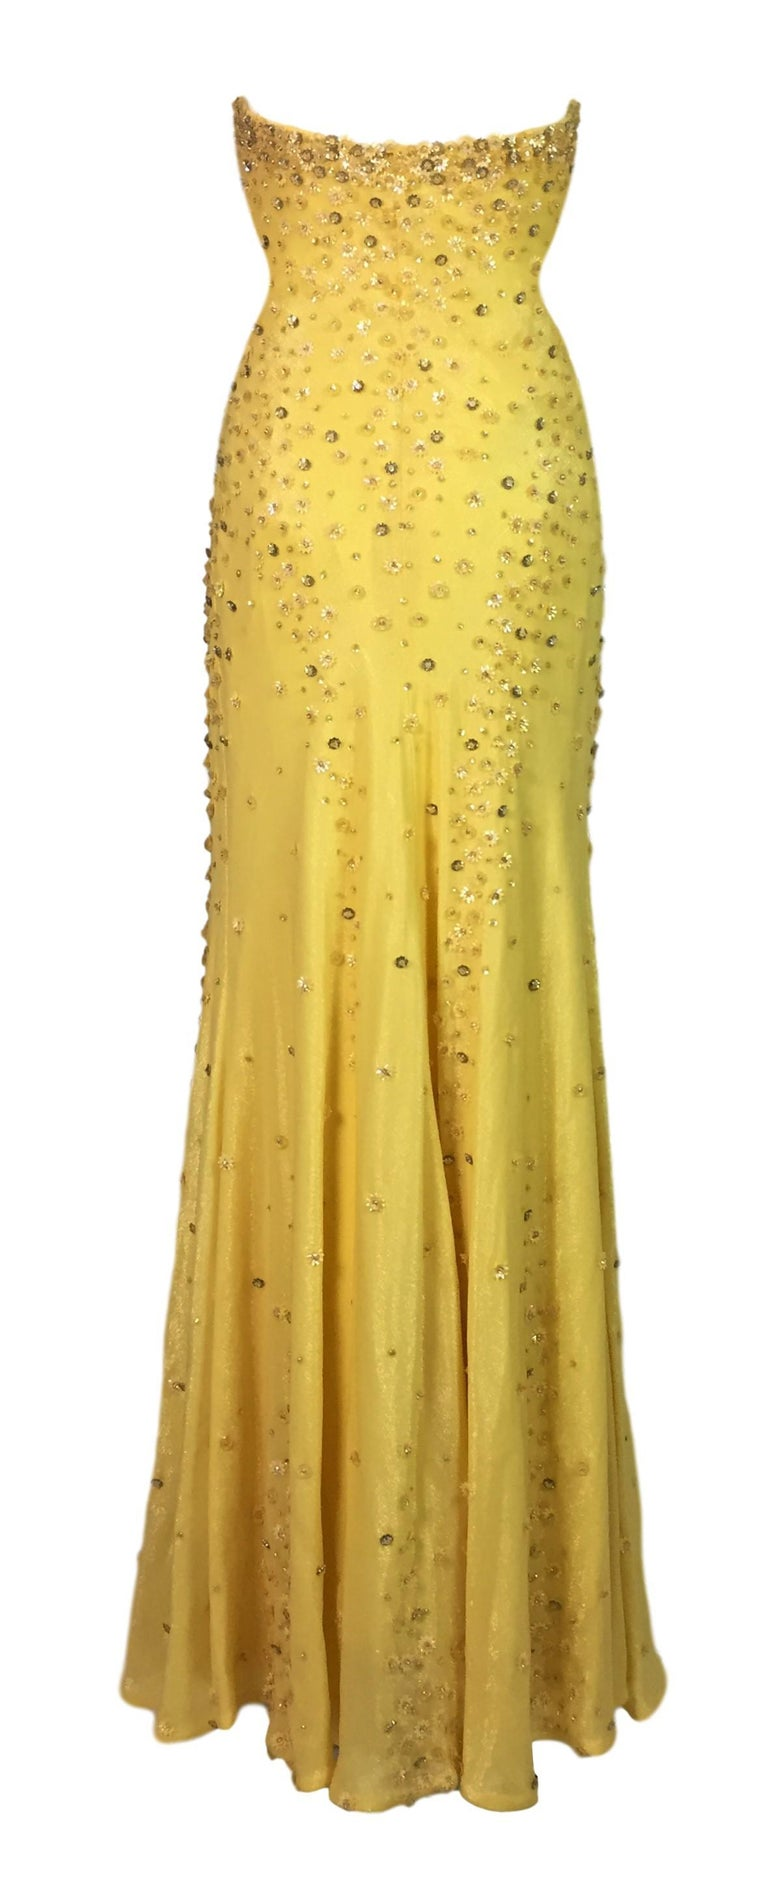 F W 1995 Documented Gianni Versace Couture Yellow Beaded